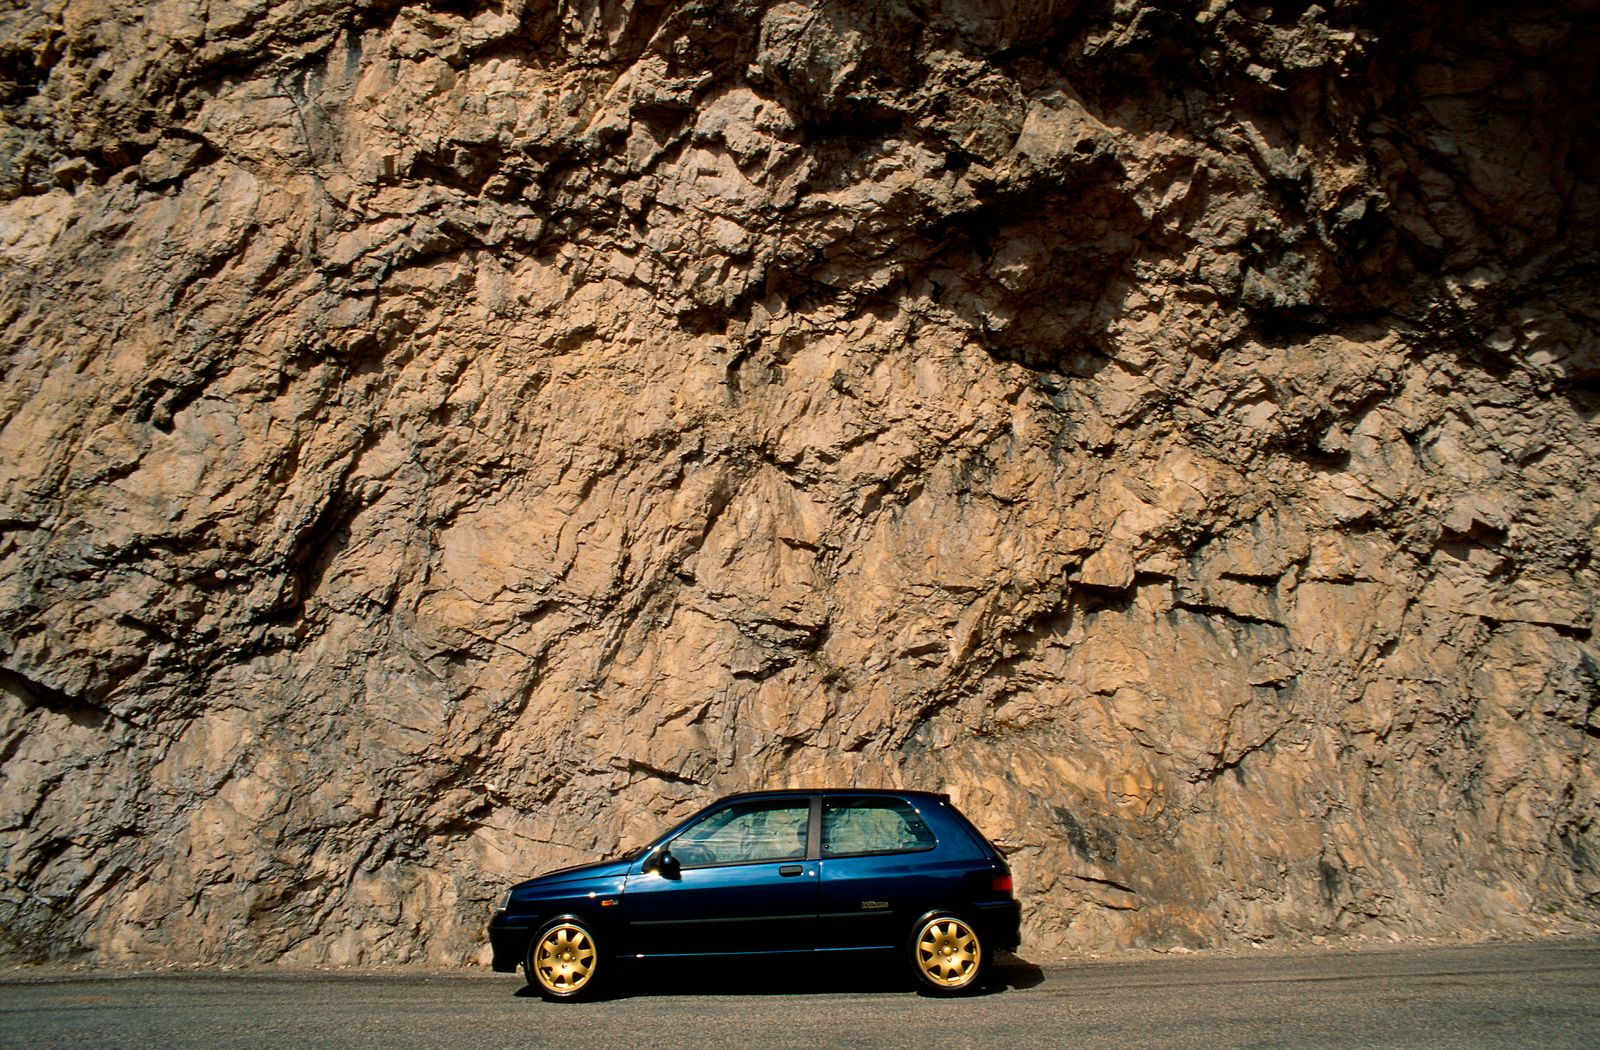 RENAULT CLIO WILLIAMS LIMITED EDITION - 93 MODEL